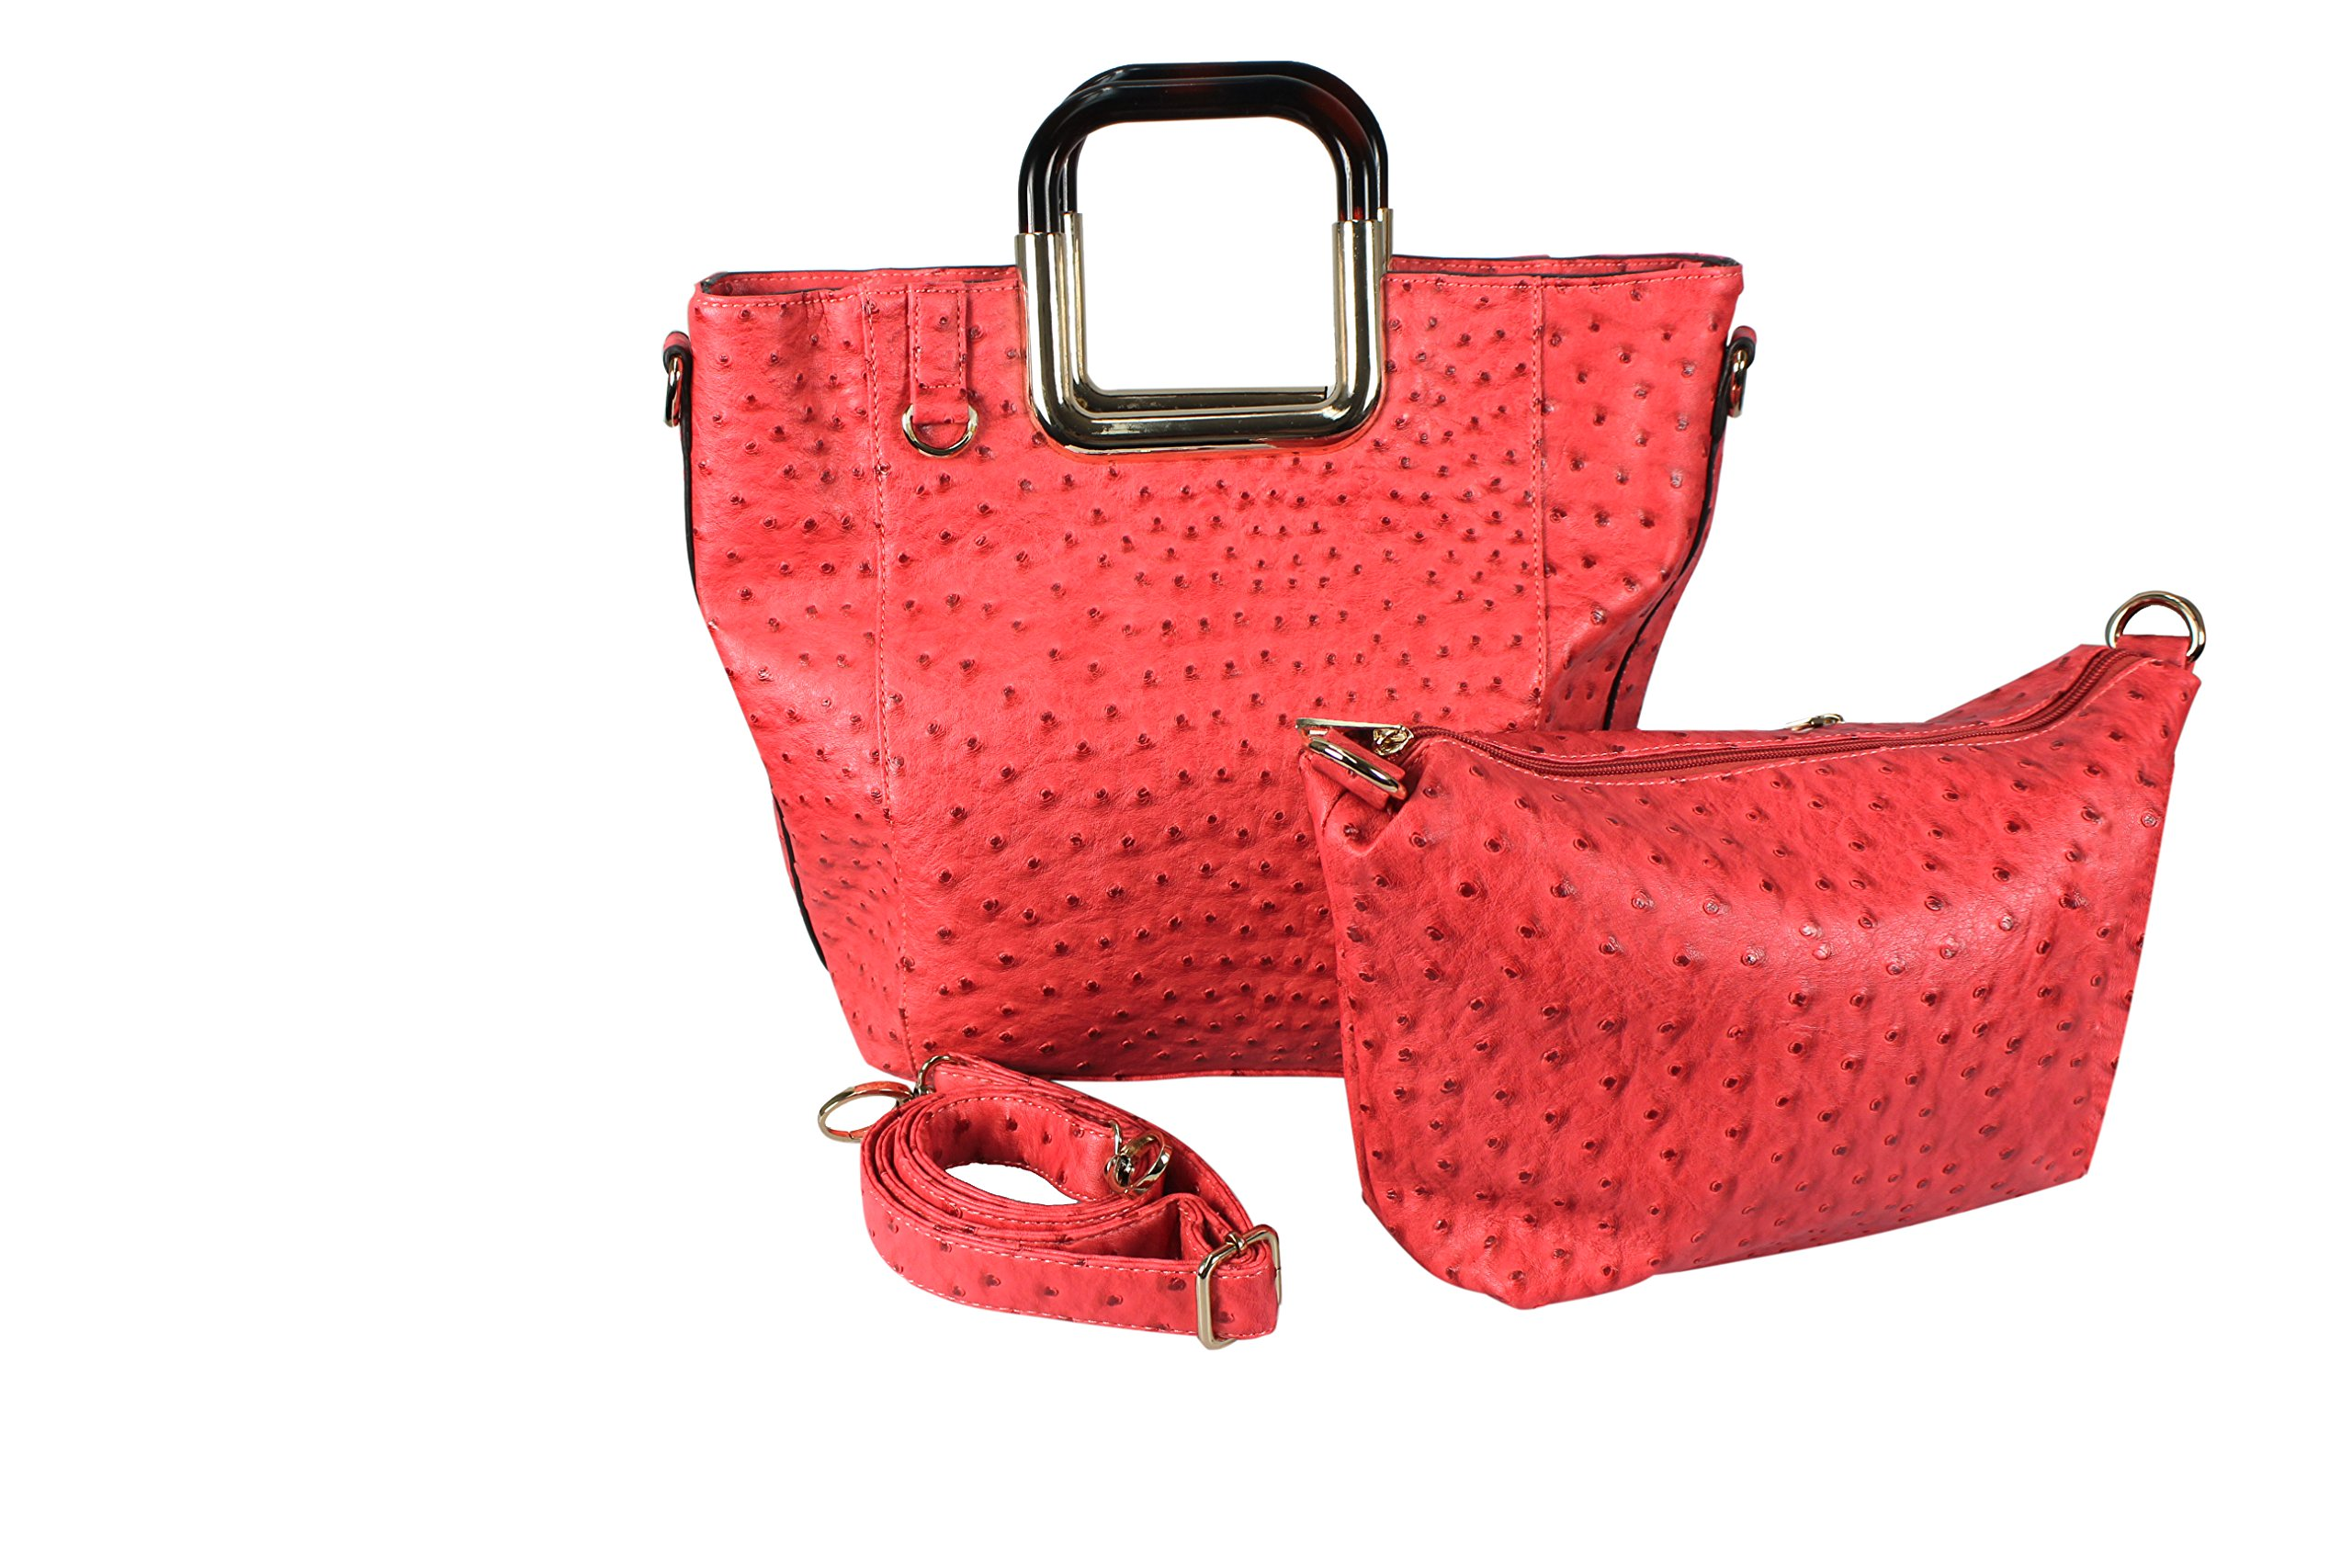 Peach Couture Elegance Personified 2 in 1 Tote and Satchel Exquisite Handbags Coral